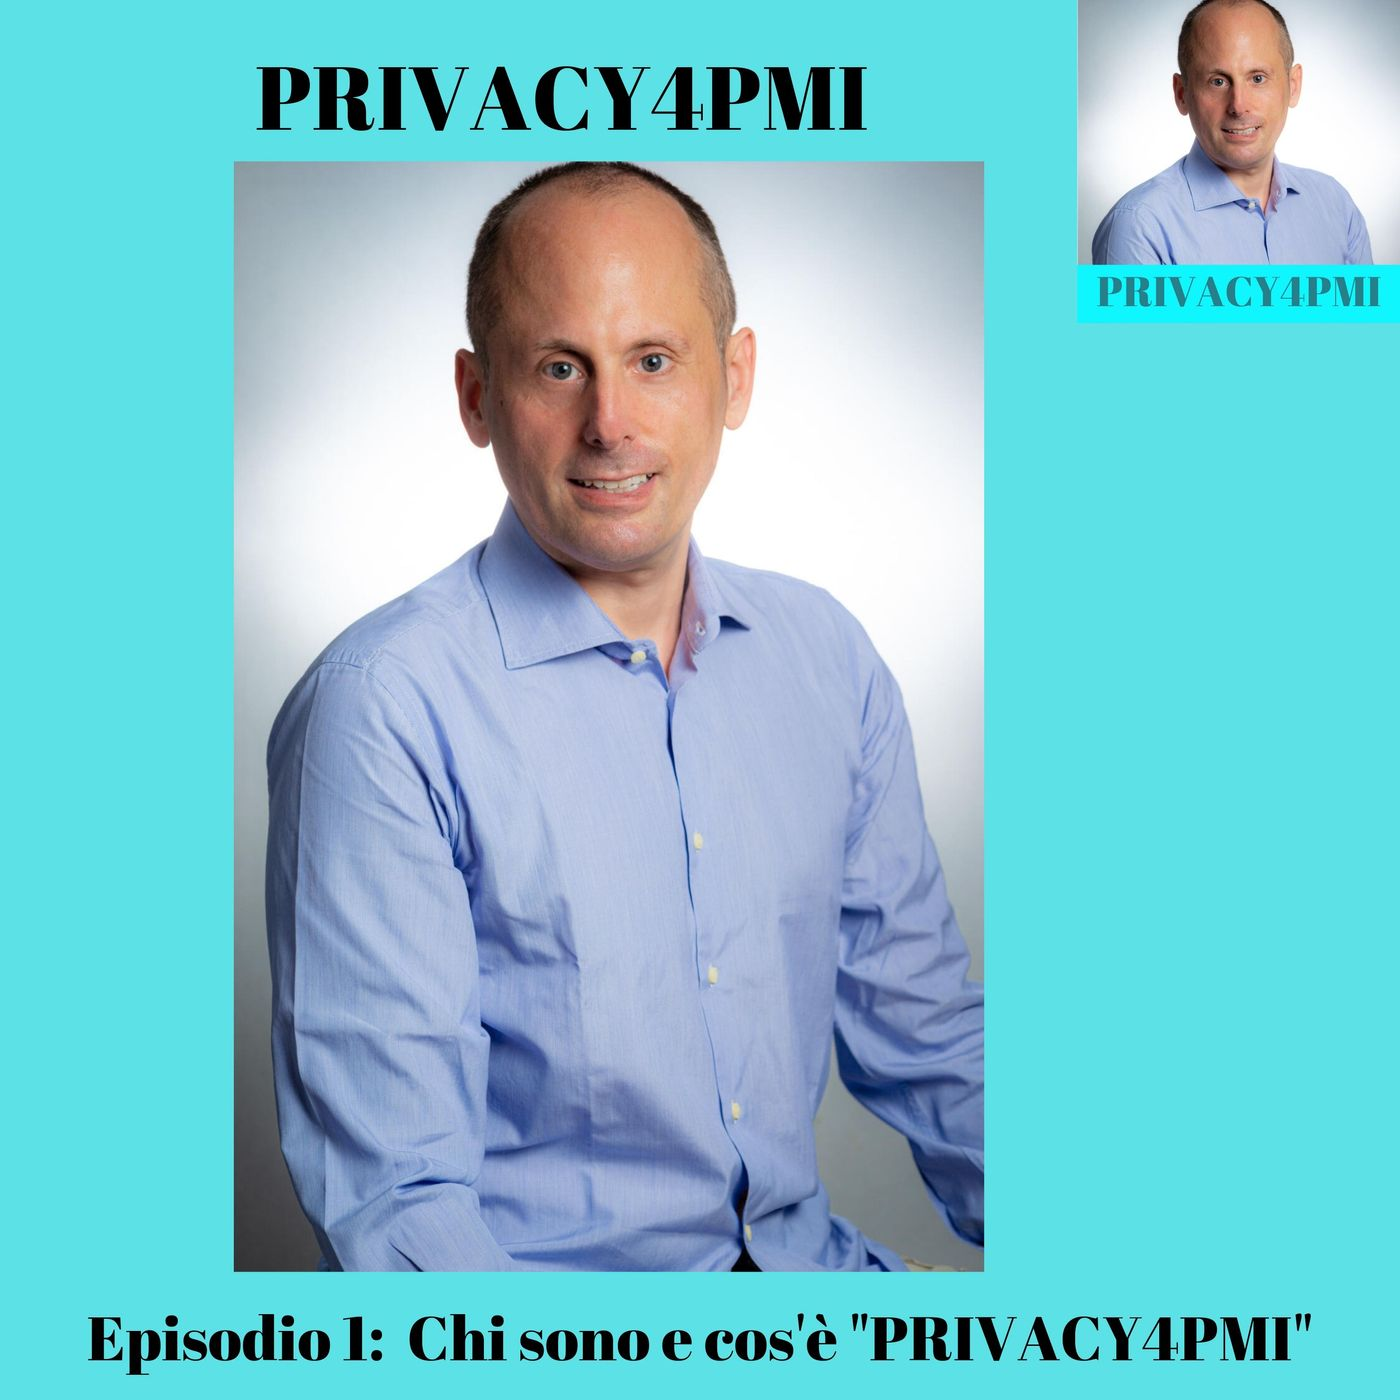 Episodio 1 - Chi sono e cos'è Privacy4PMI